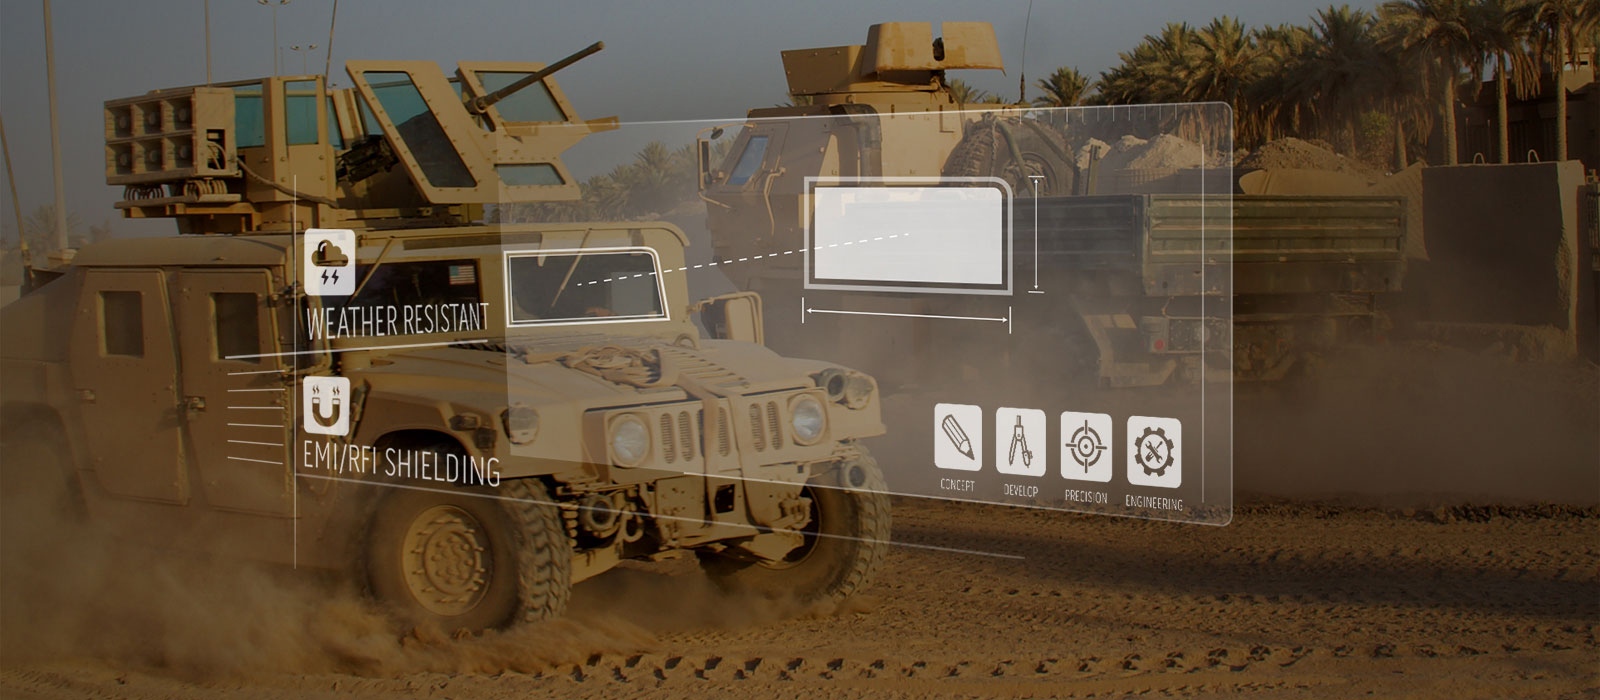 Military hummvee in desert with overlay graphic popping up on the image